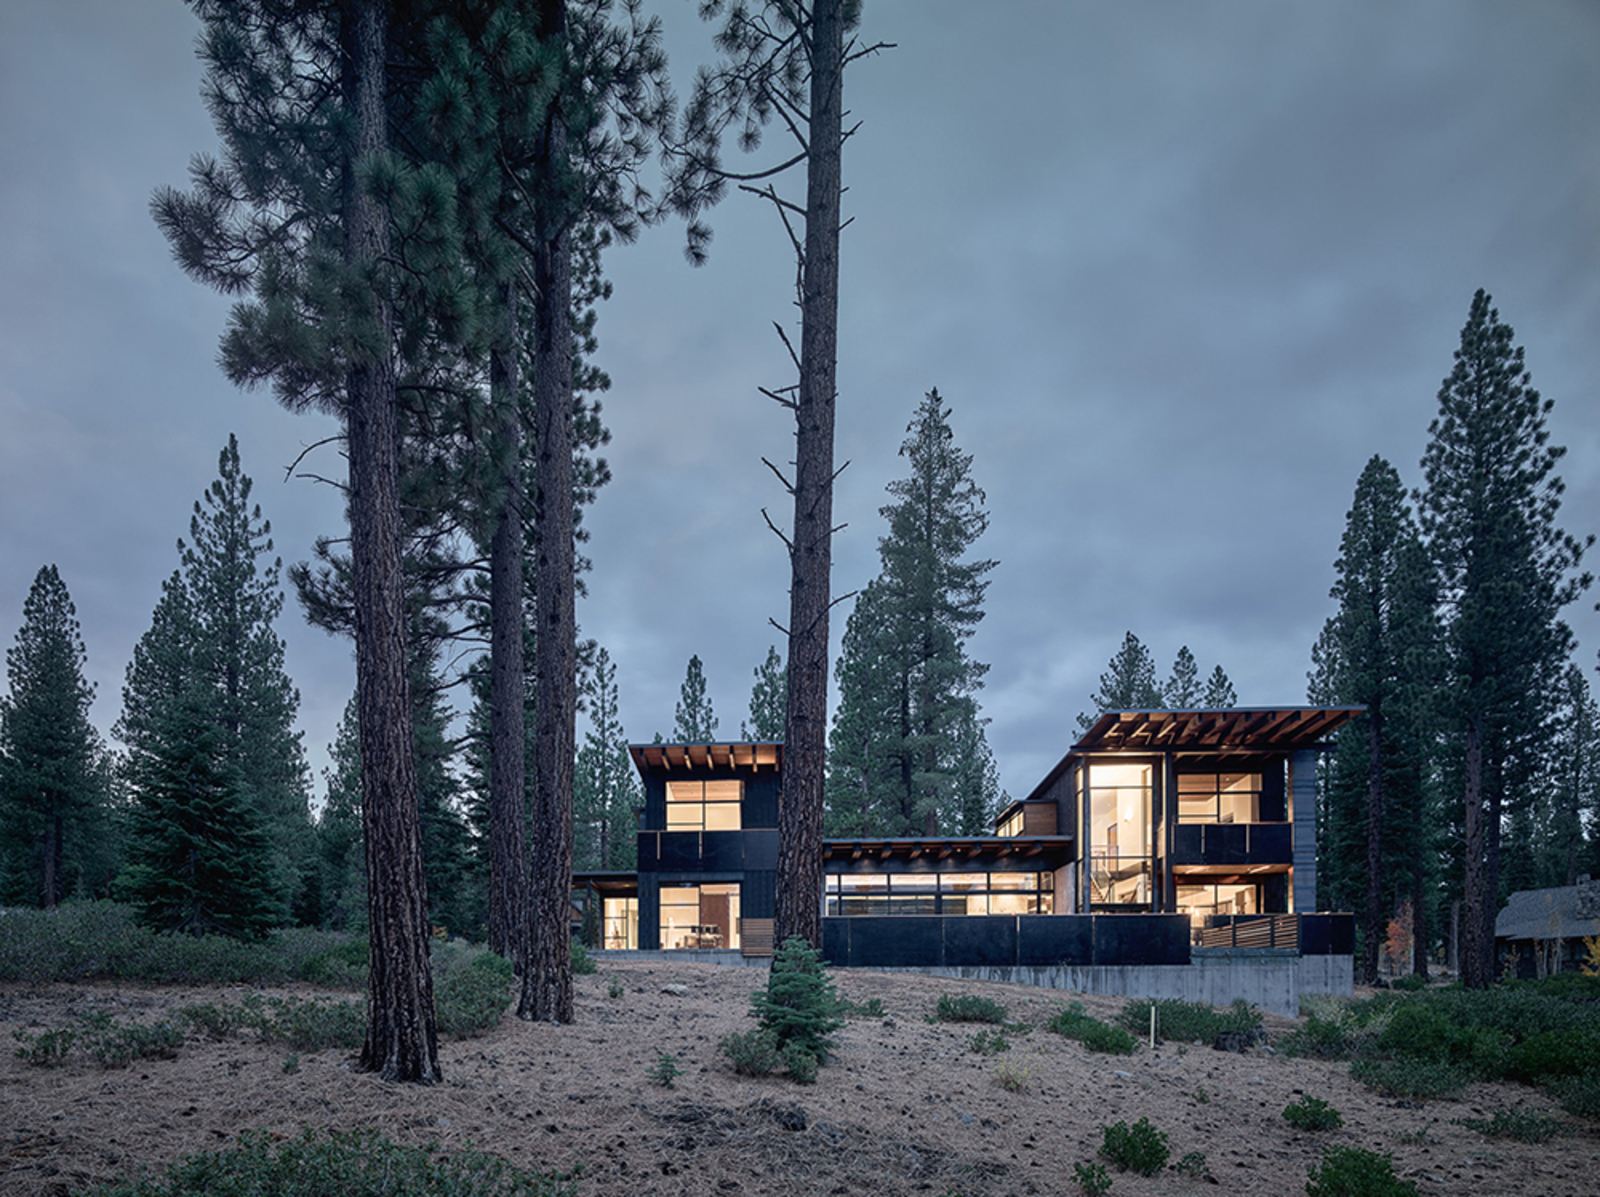 Photo: DWELL. The structure is divided into two solid vertical volumes connected by glazed living areas. The cedar cladding and steel panels reflect the hues of the surrounding forest.